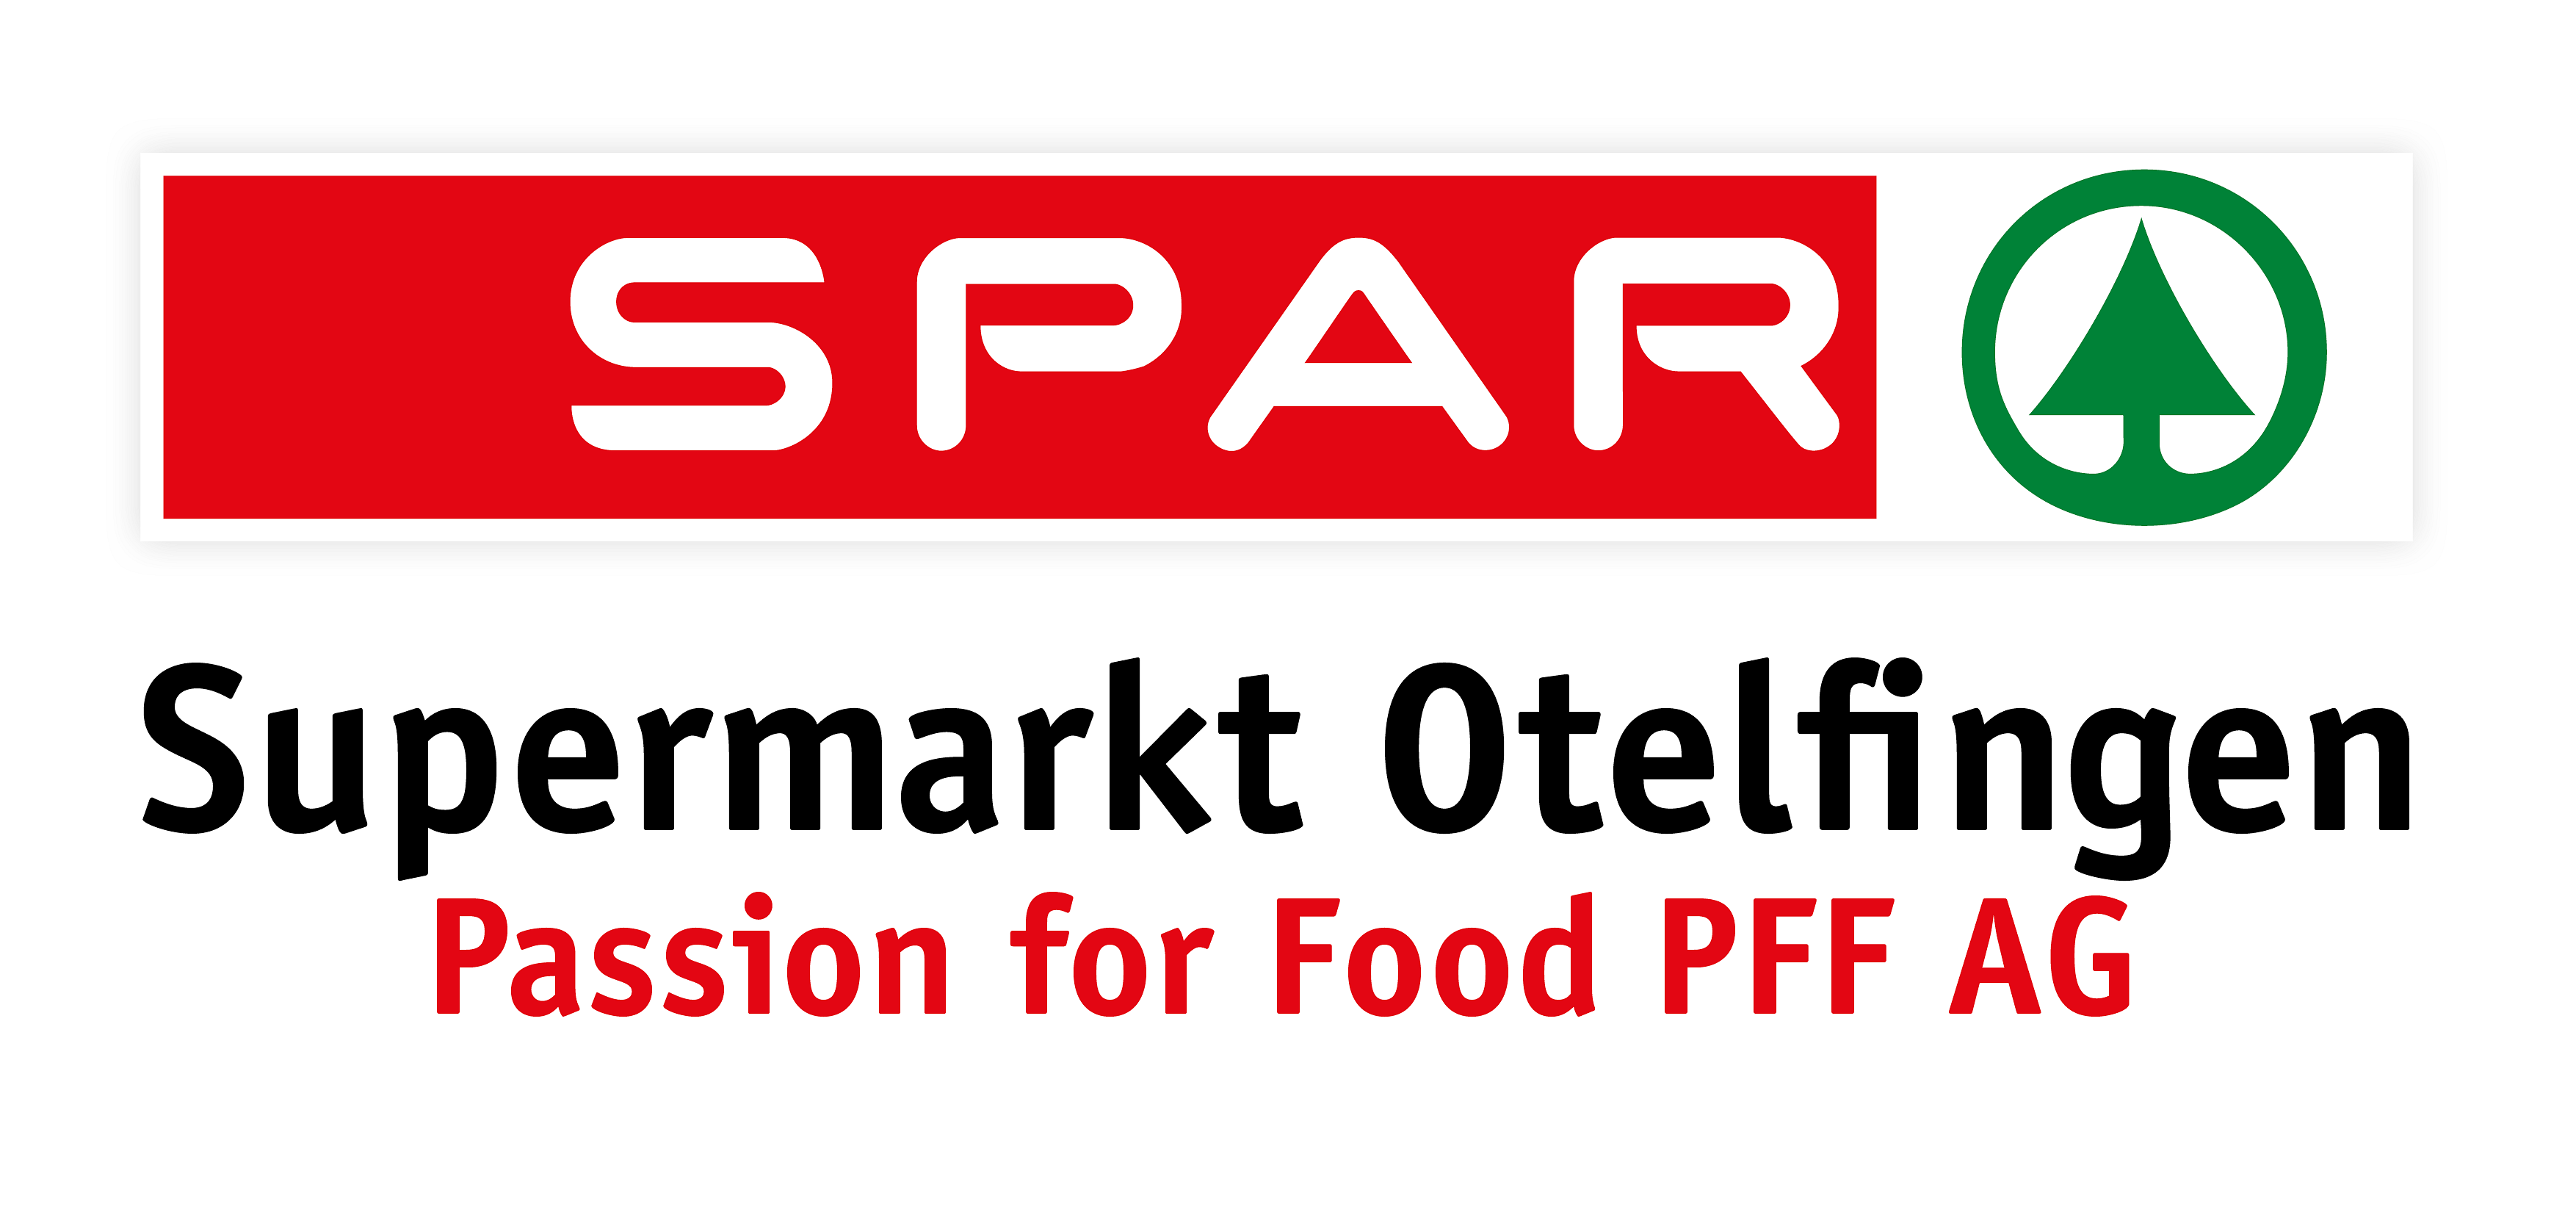 SPAR Supermarkt Otelfingen